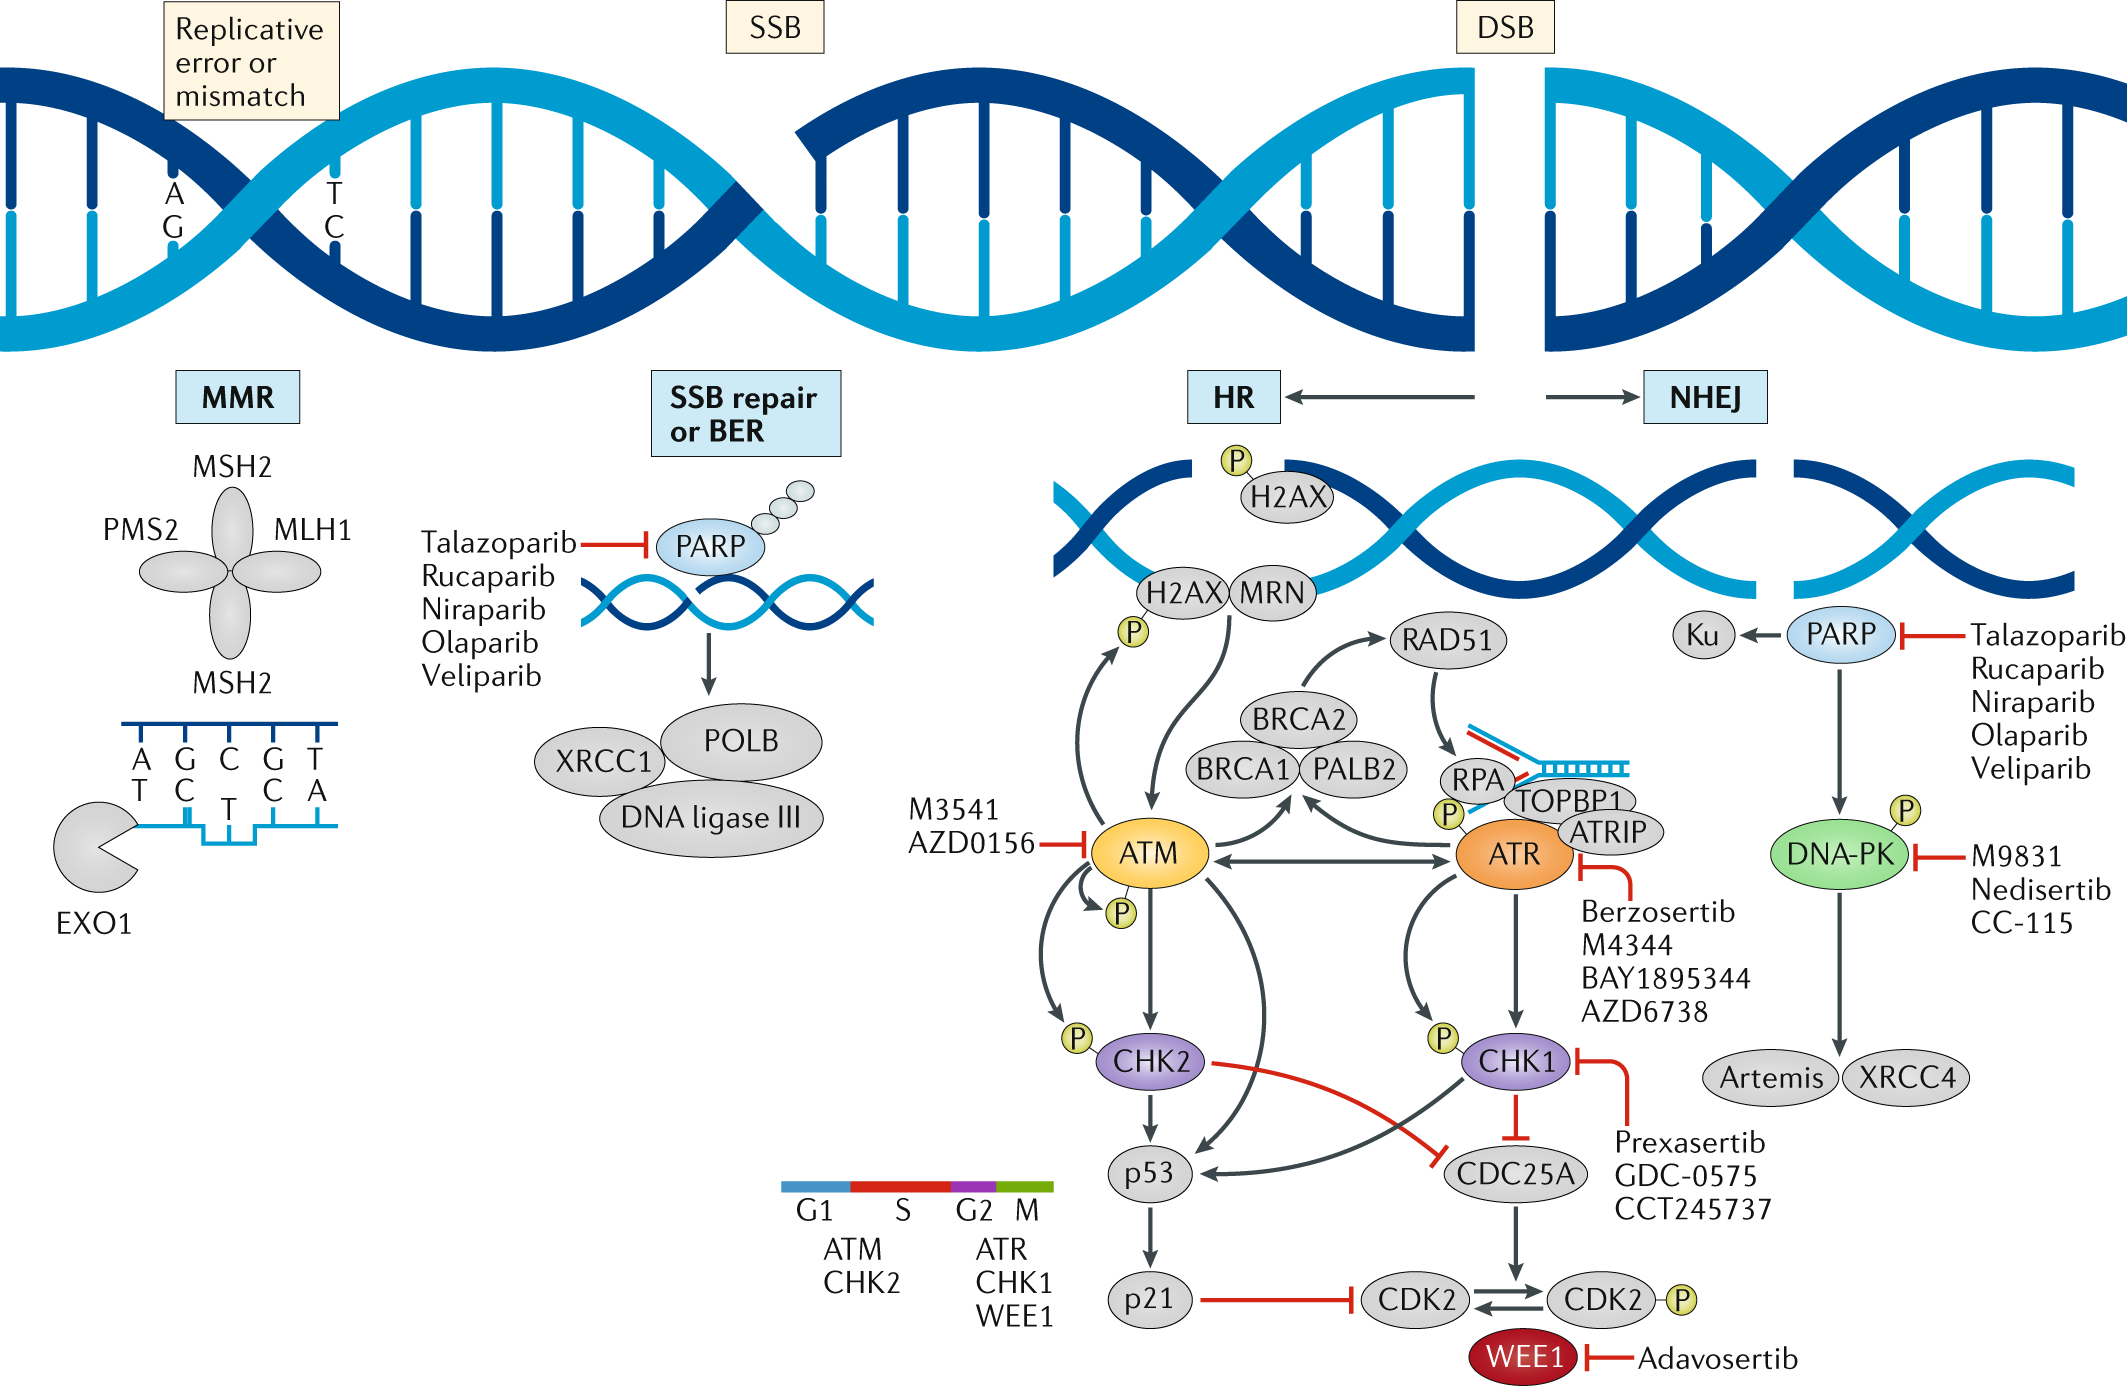 State-of-the-art strategies for targeting the DNA damage response in c